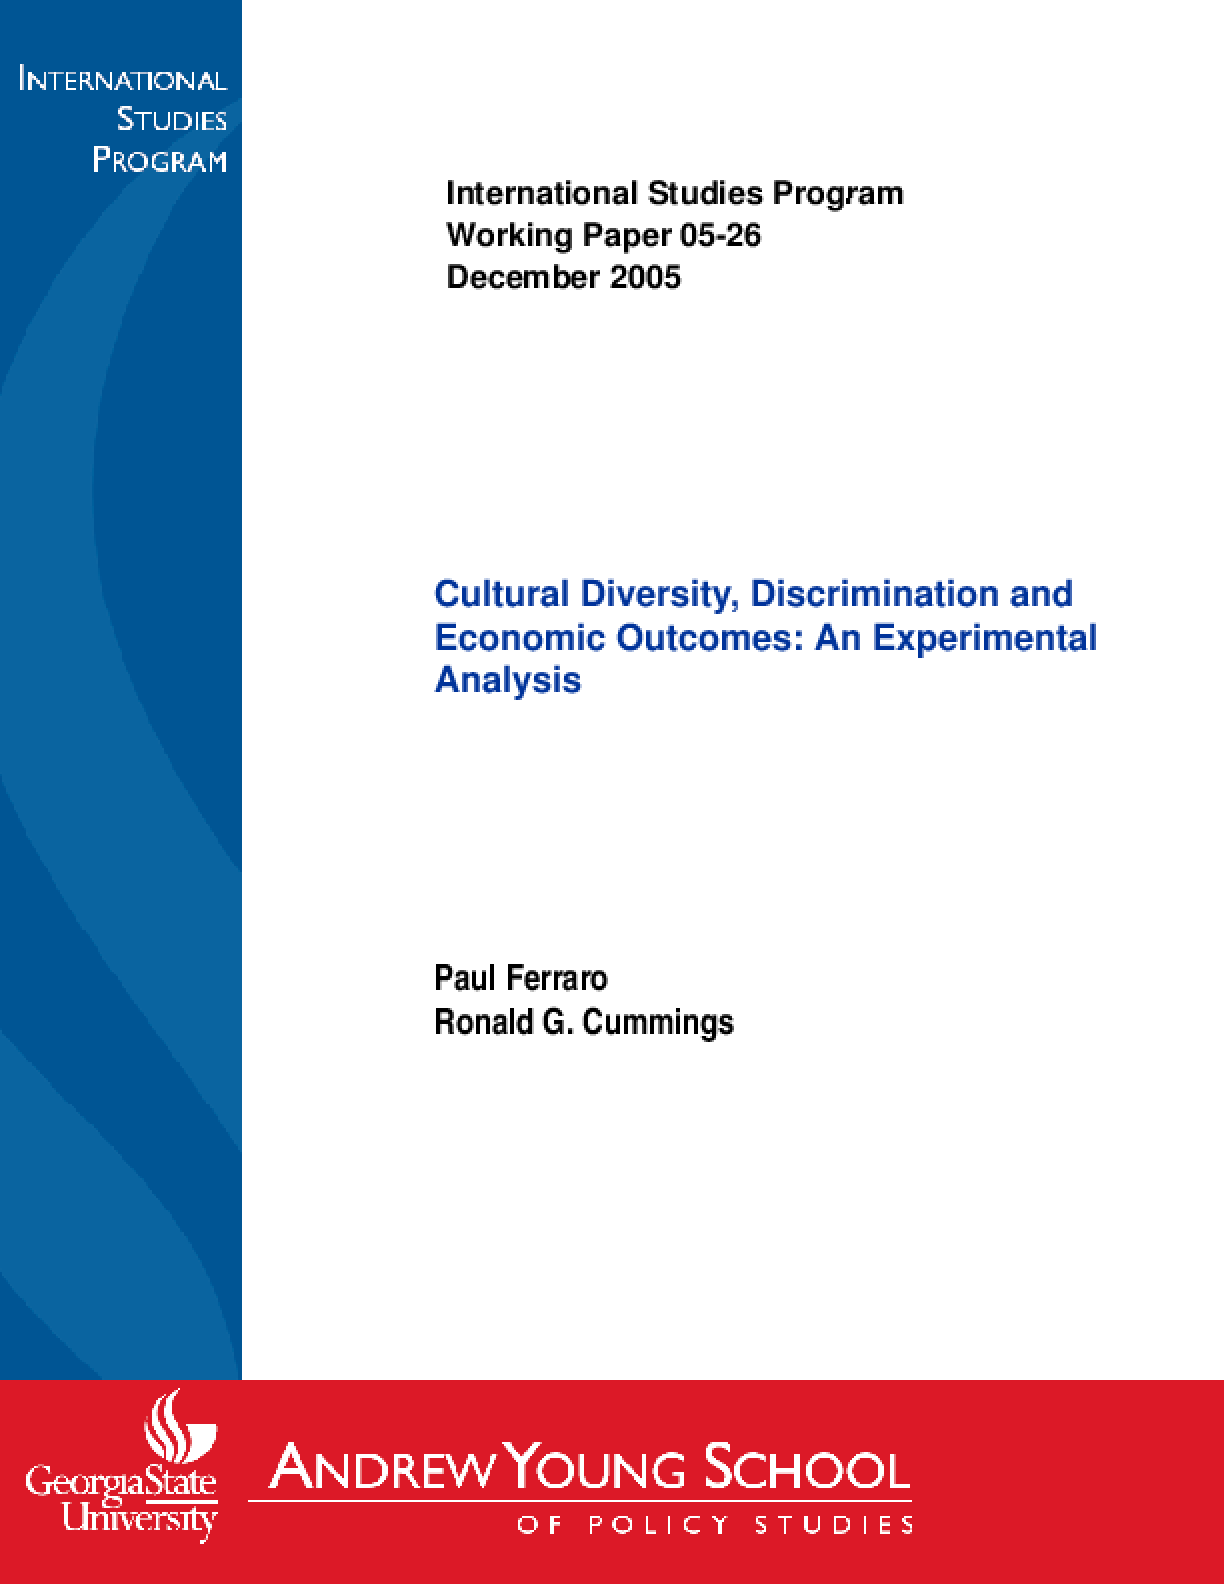 Cultural Diversity, Discrimination and Economic Outcomes: An Experimental Analysis